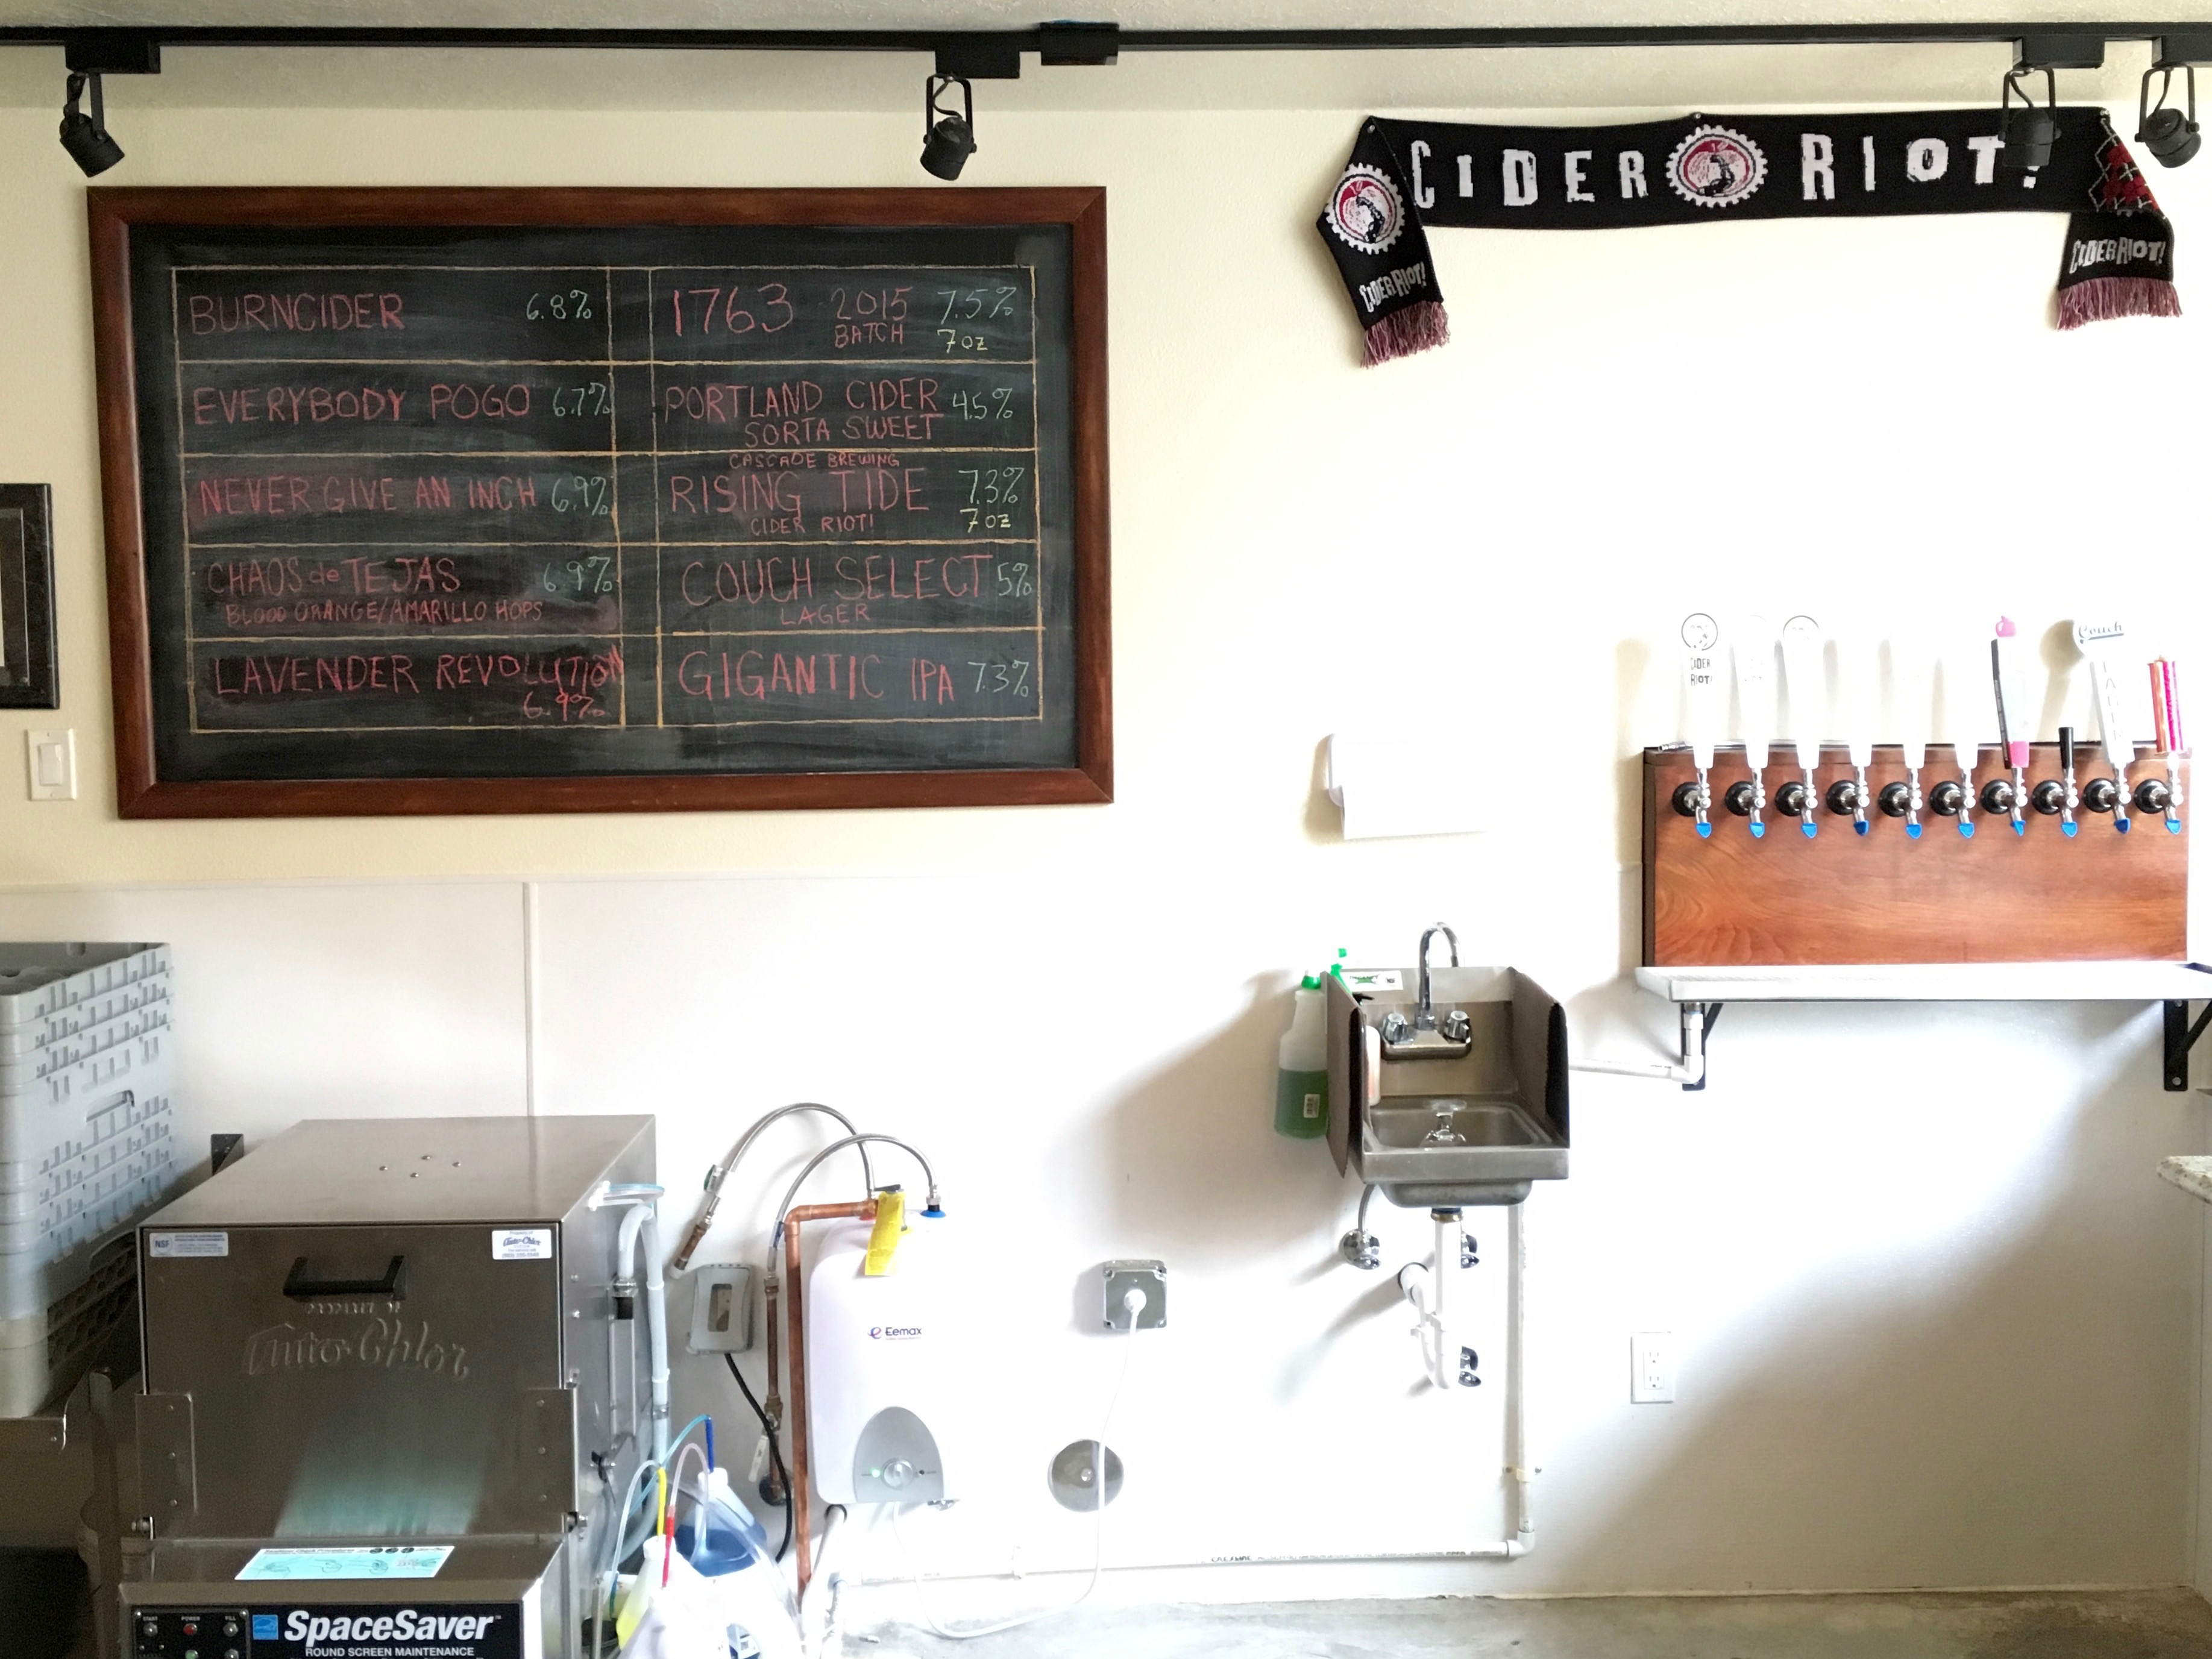 Tap list and tap handles at Cider Riot! Pub.